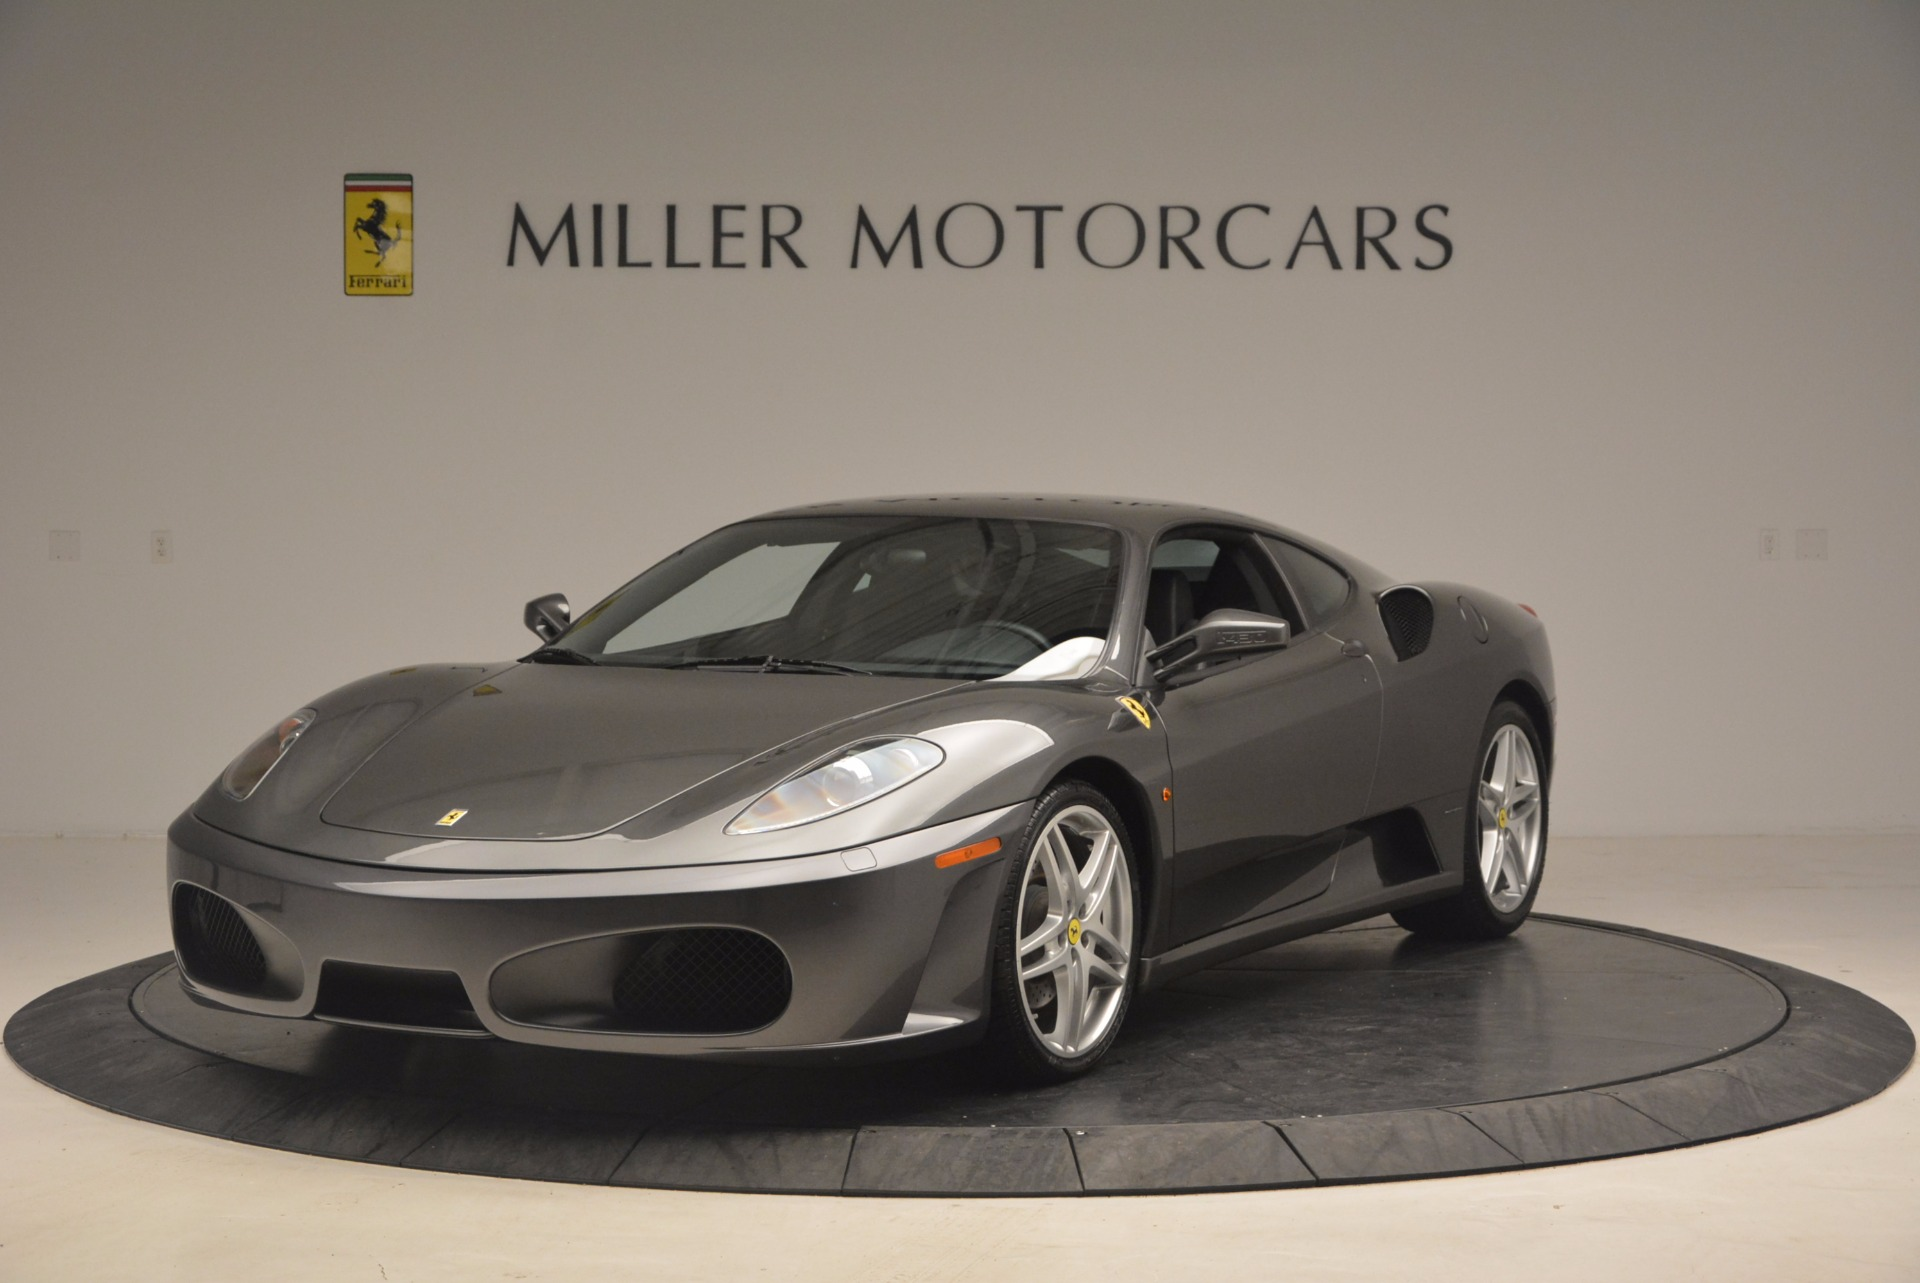 Used 2005 Ferrari F430 6-Speed Manual for sale Sold at McLaren Greenwich in Greenwich CT 06830 1